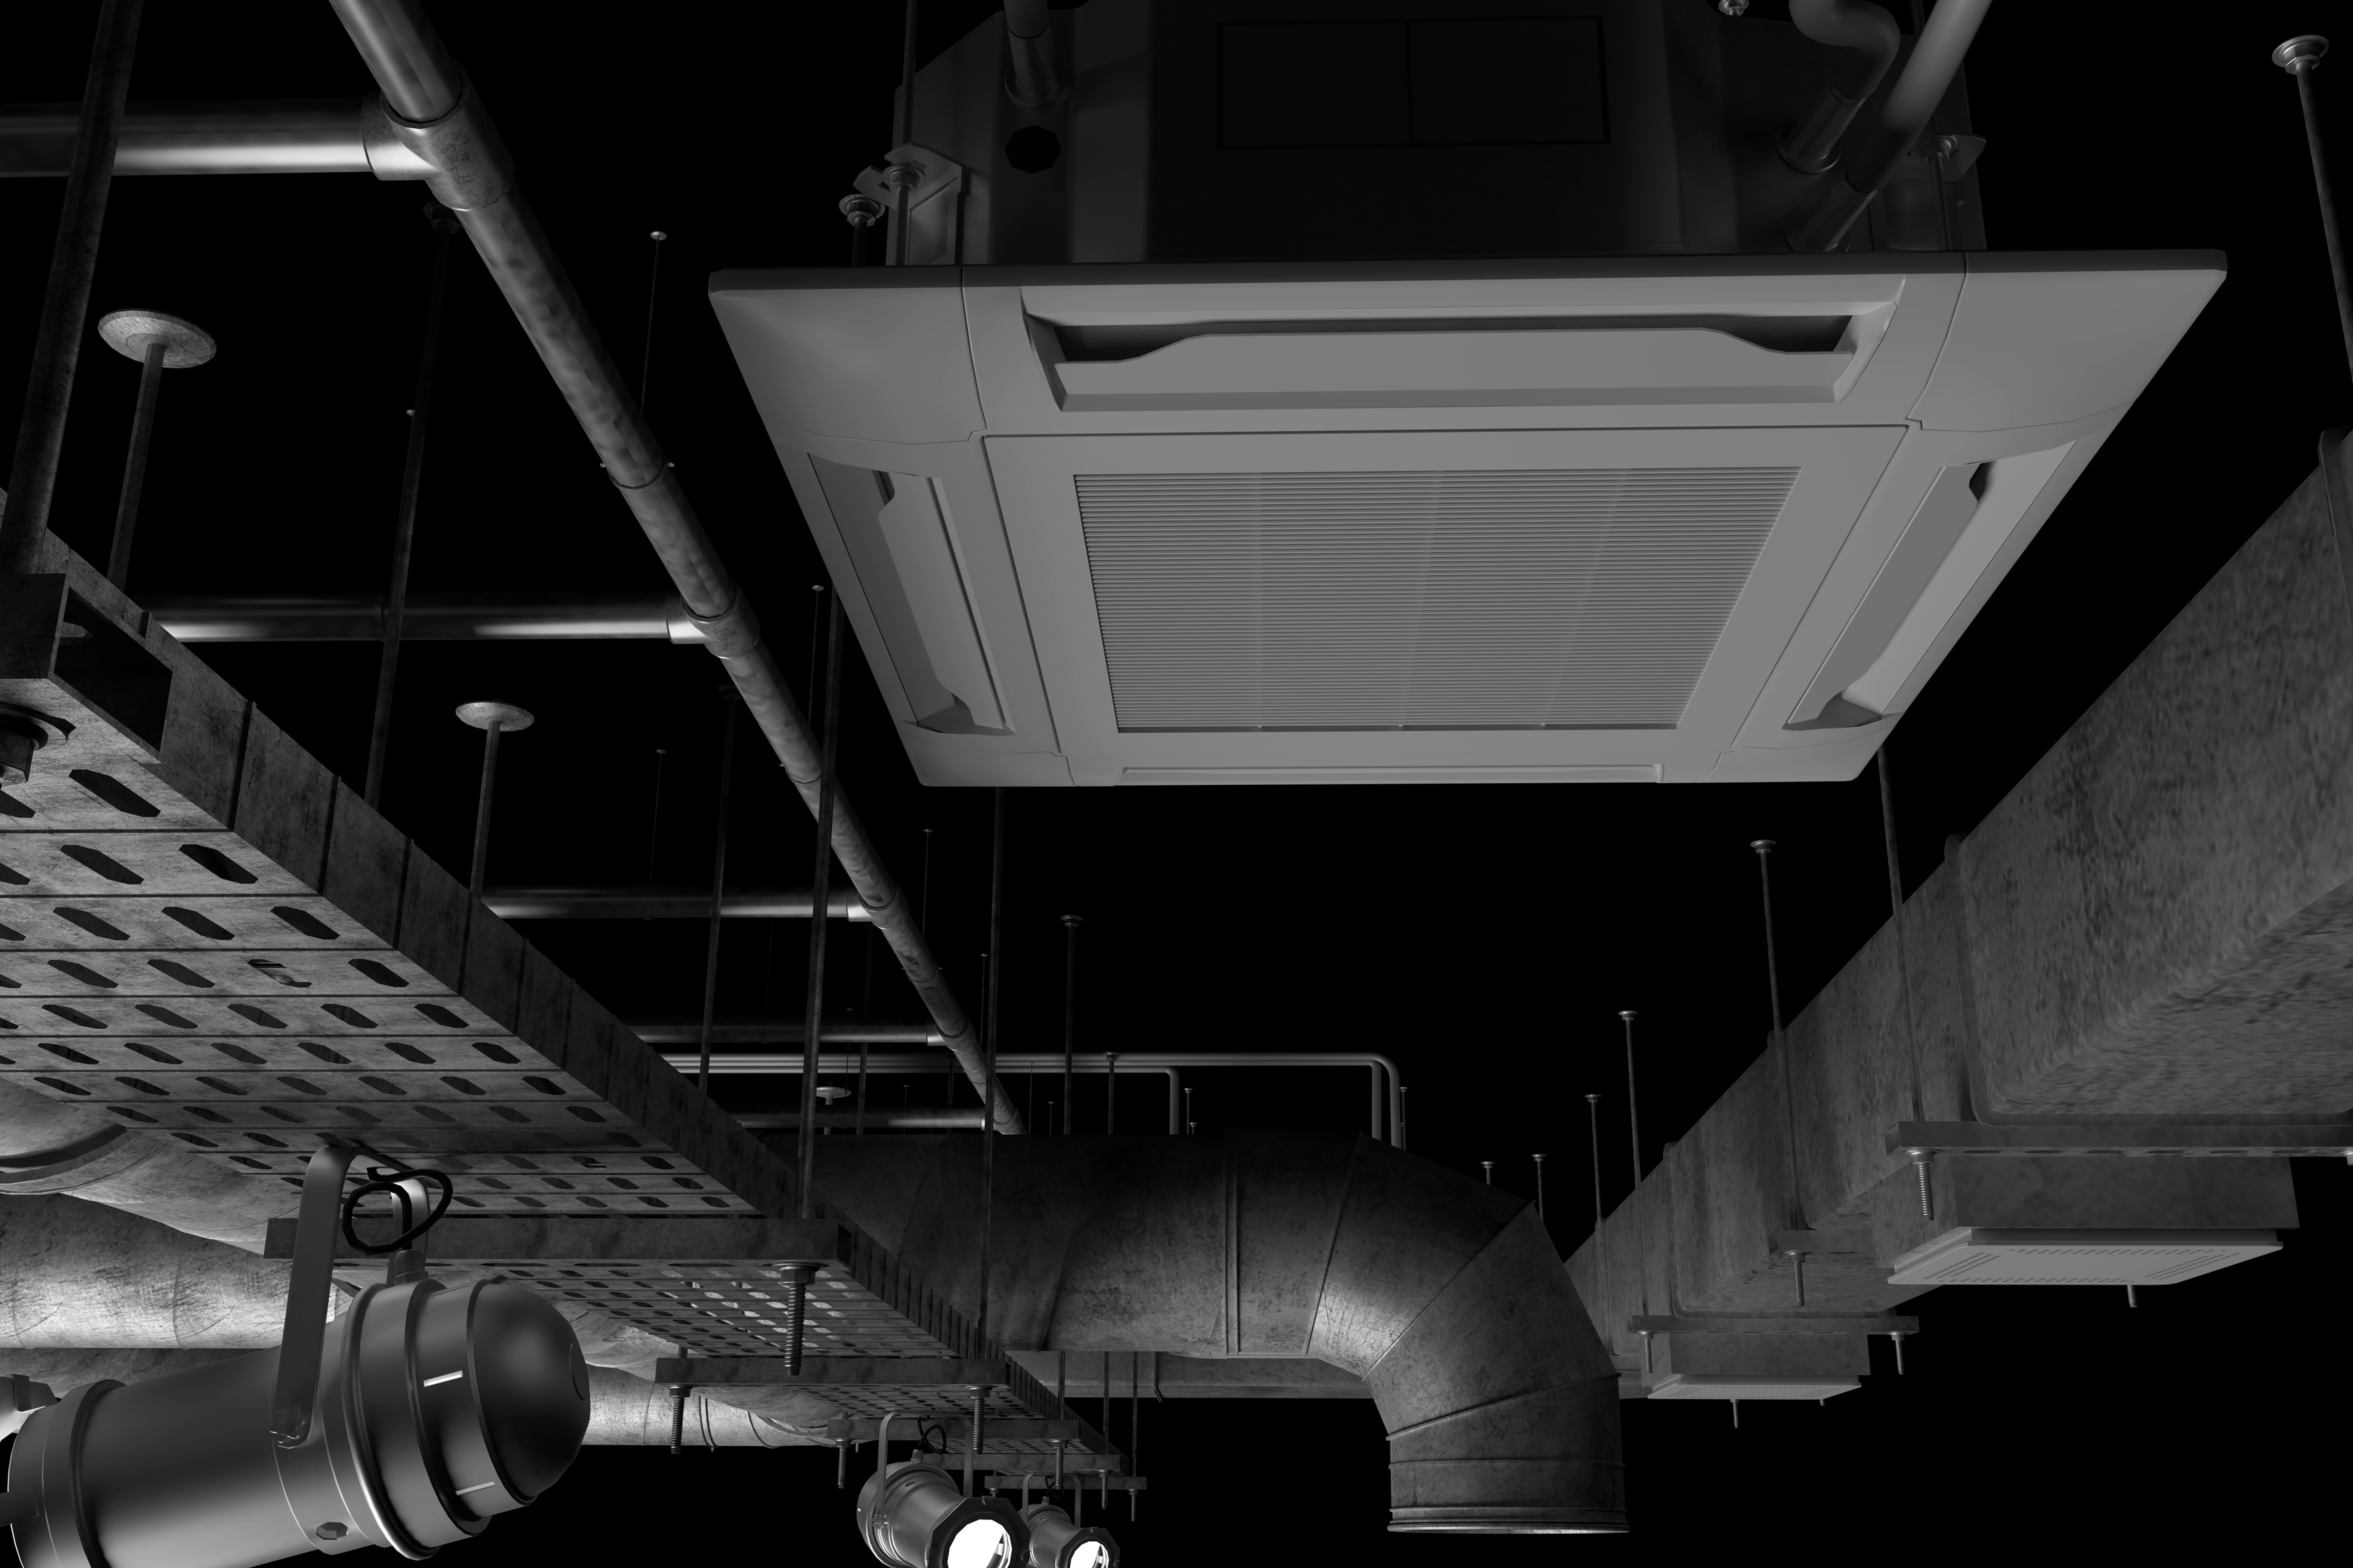 3D illustration of the ceiling pipes and air condition system